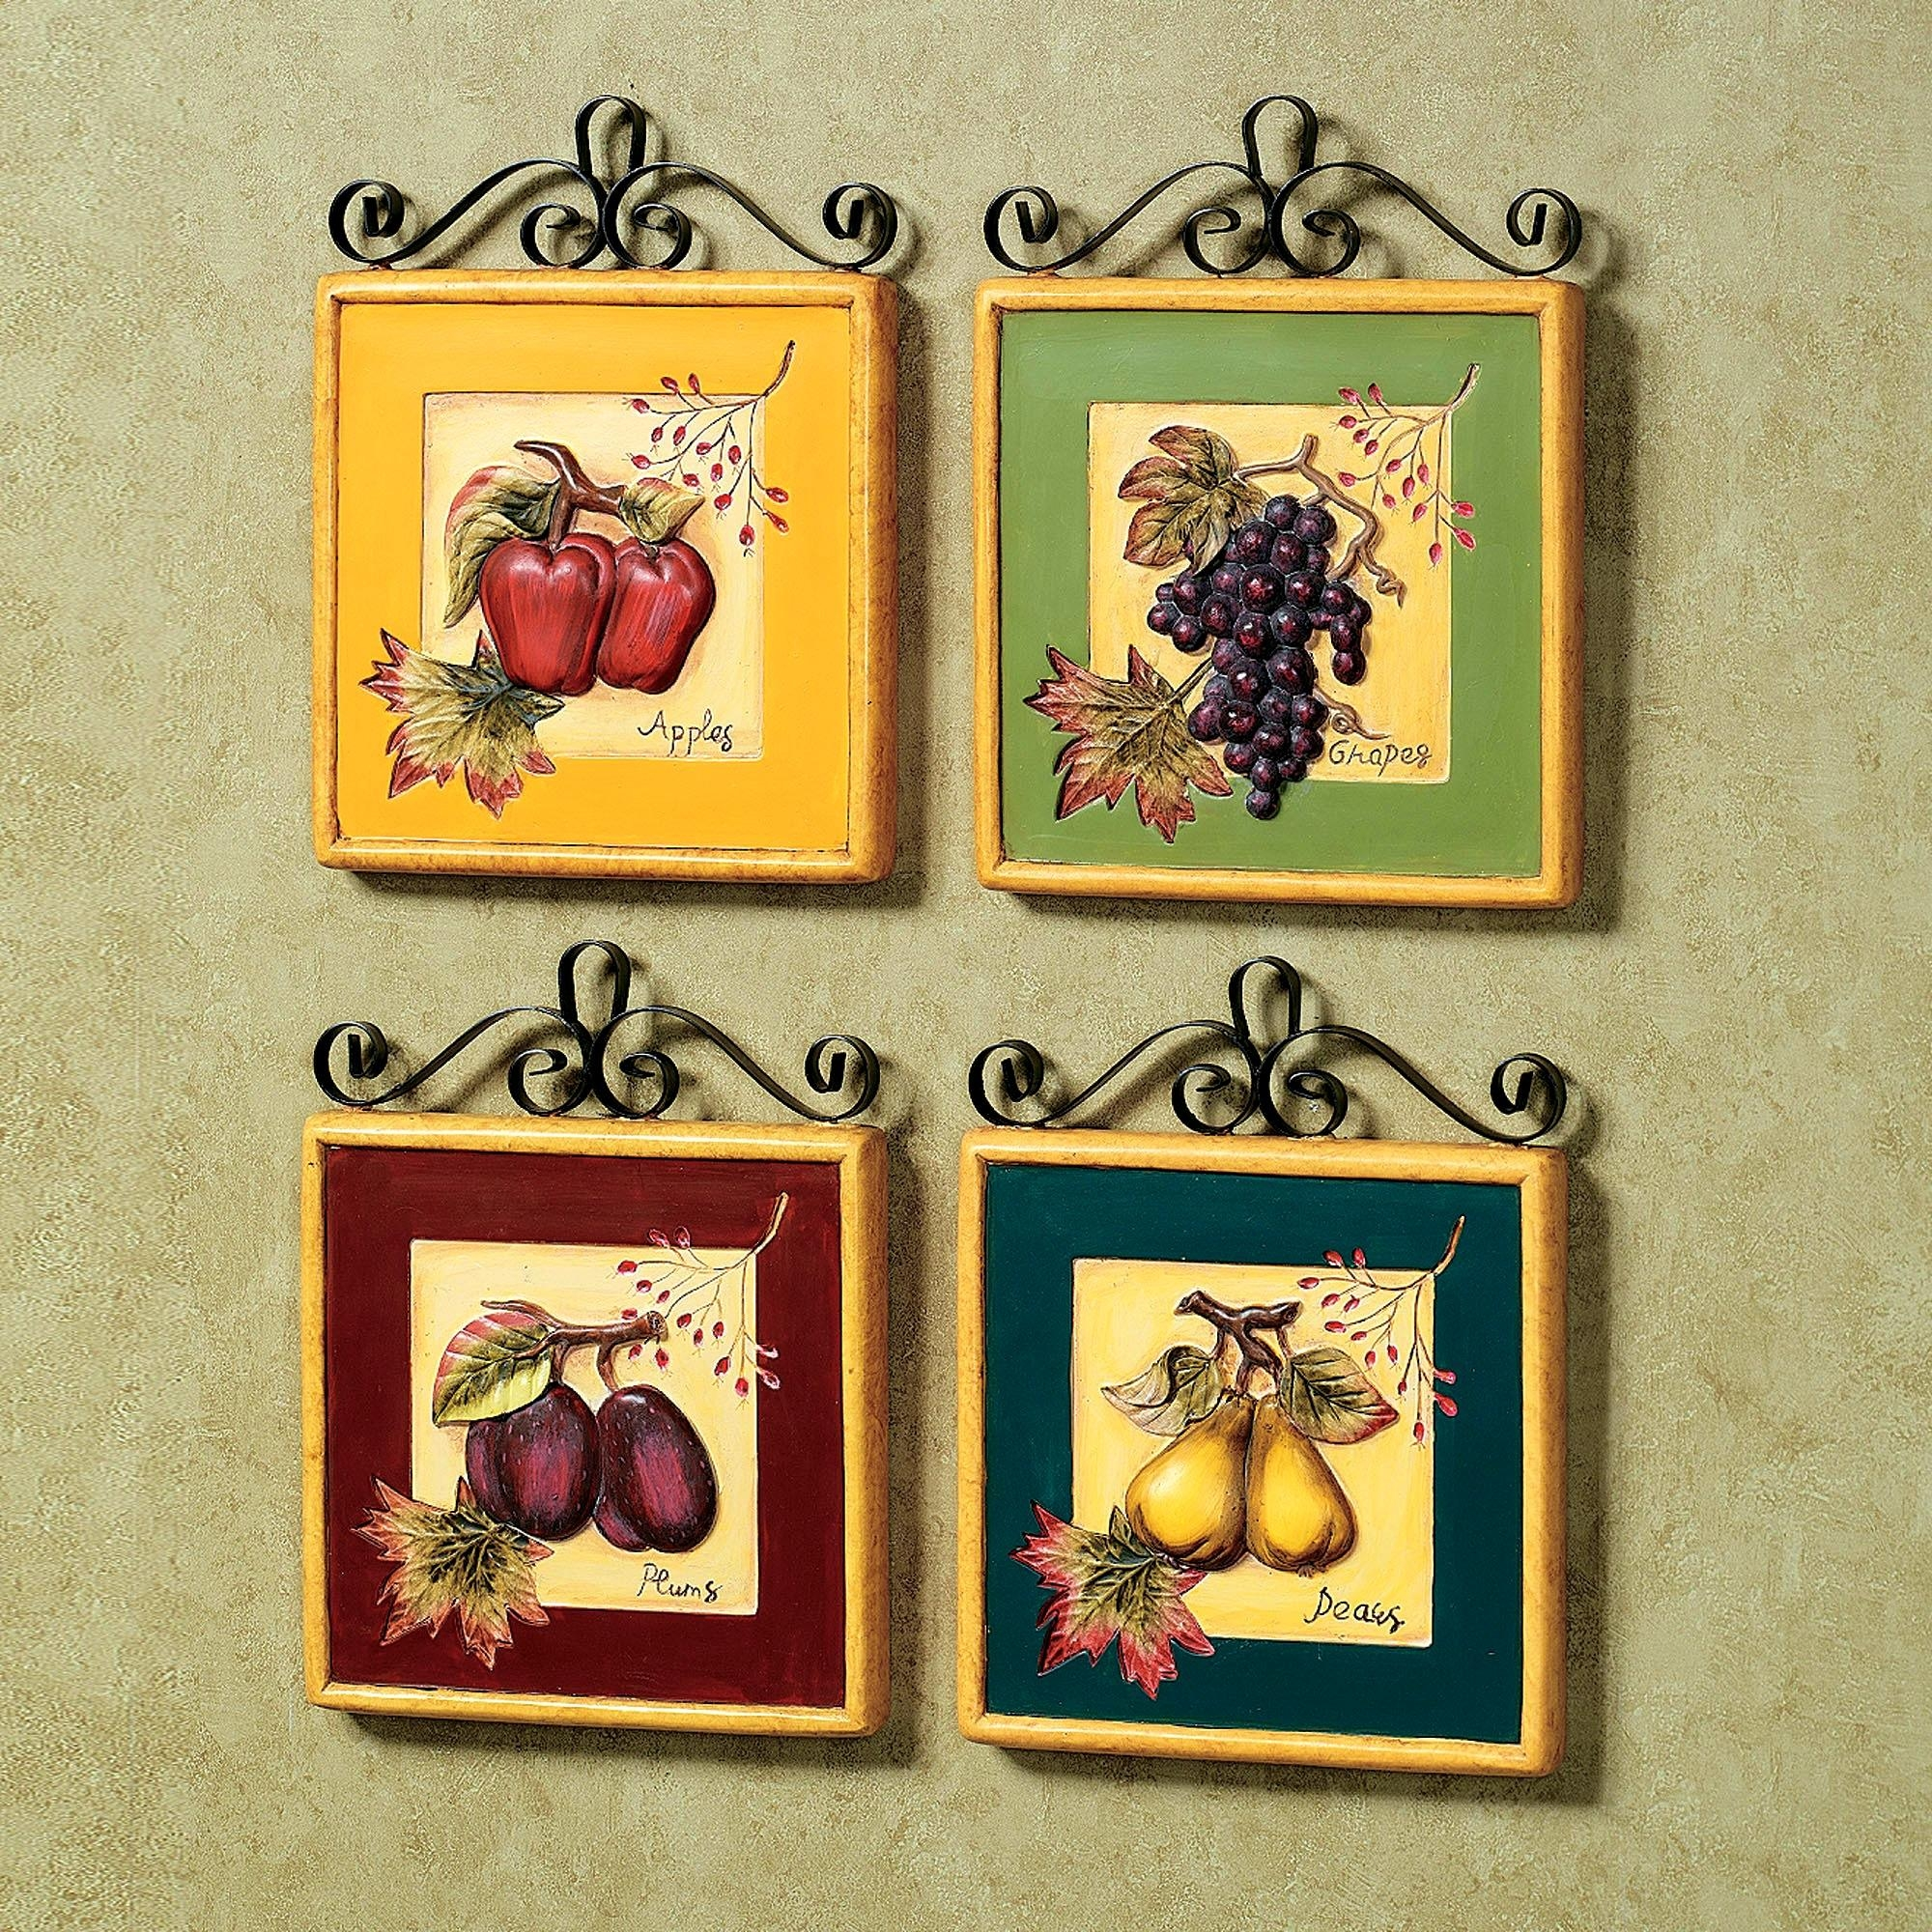 Wall Art Plaques - Elitflat